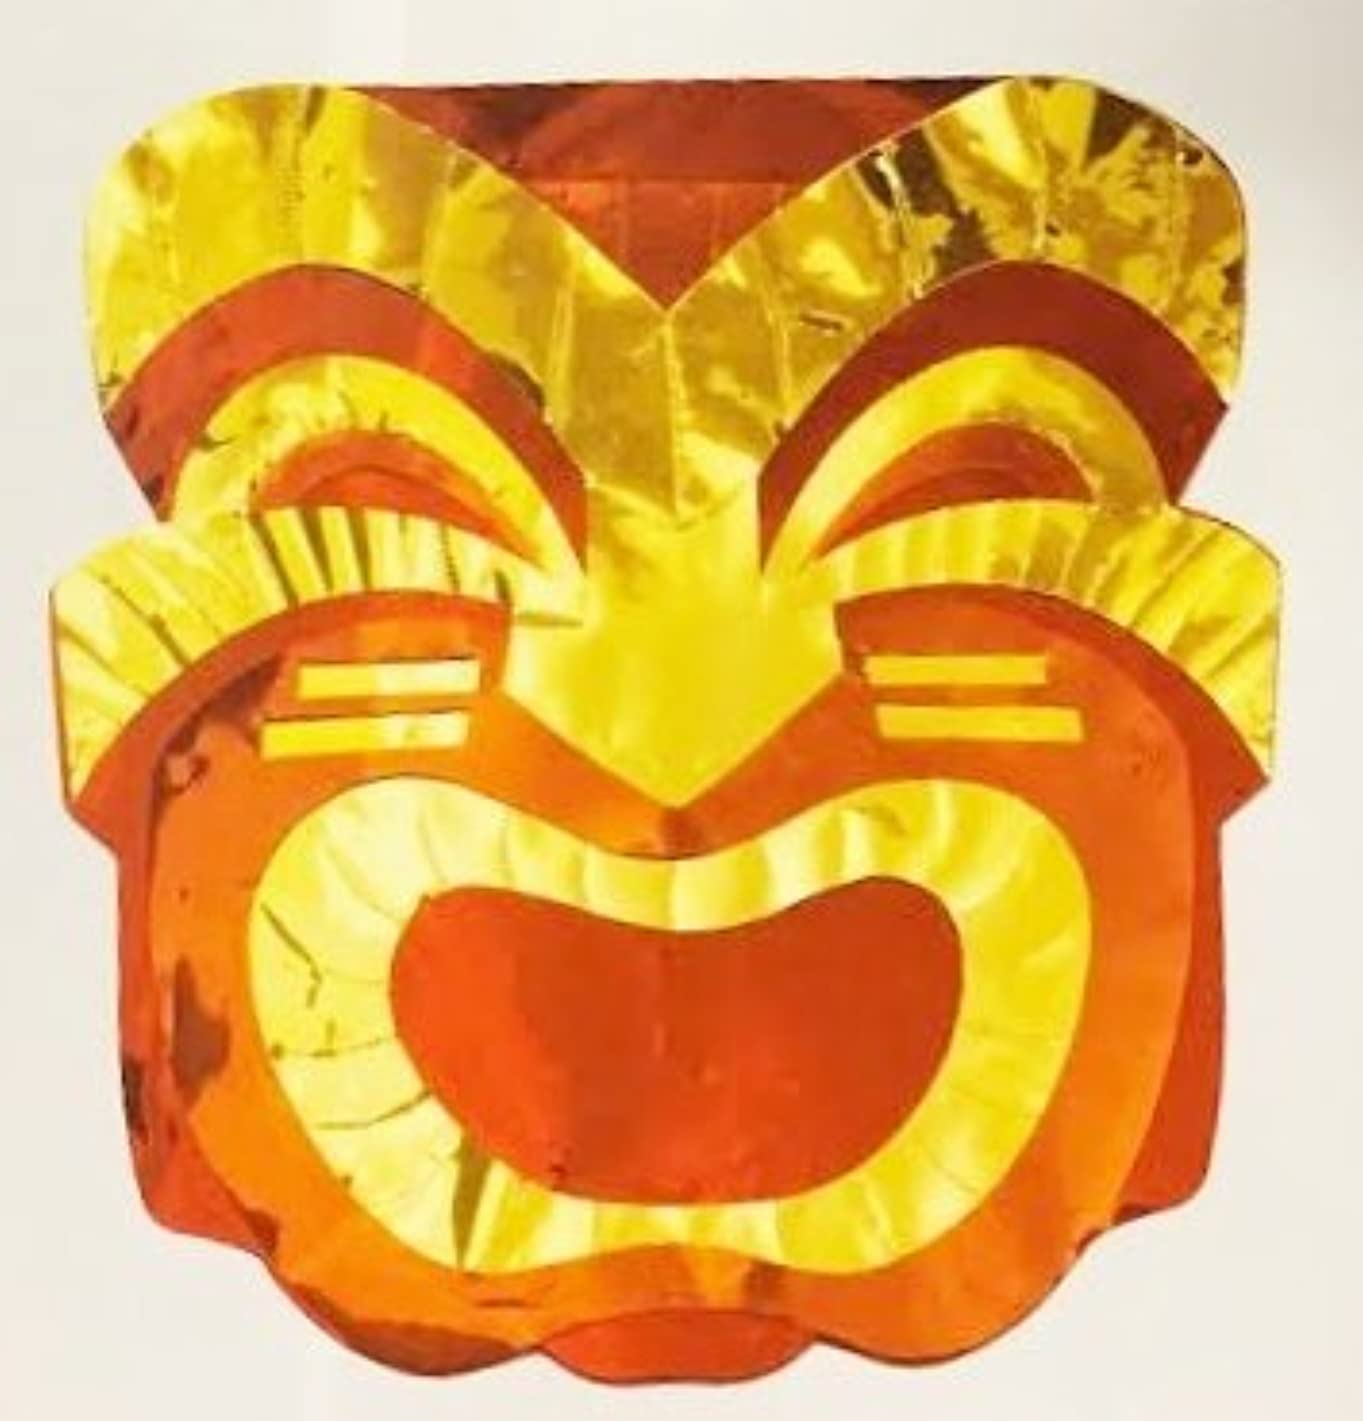 Giant Foil Cutout Tiki Mask Hawaii Beach Party Decoration (13 Inches Tall)